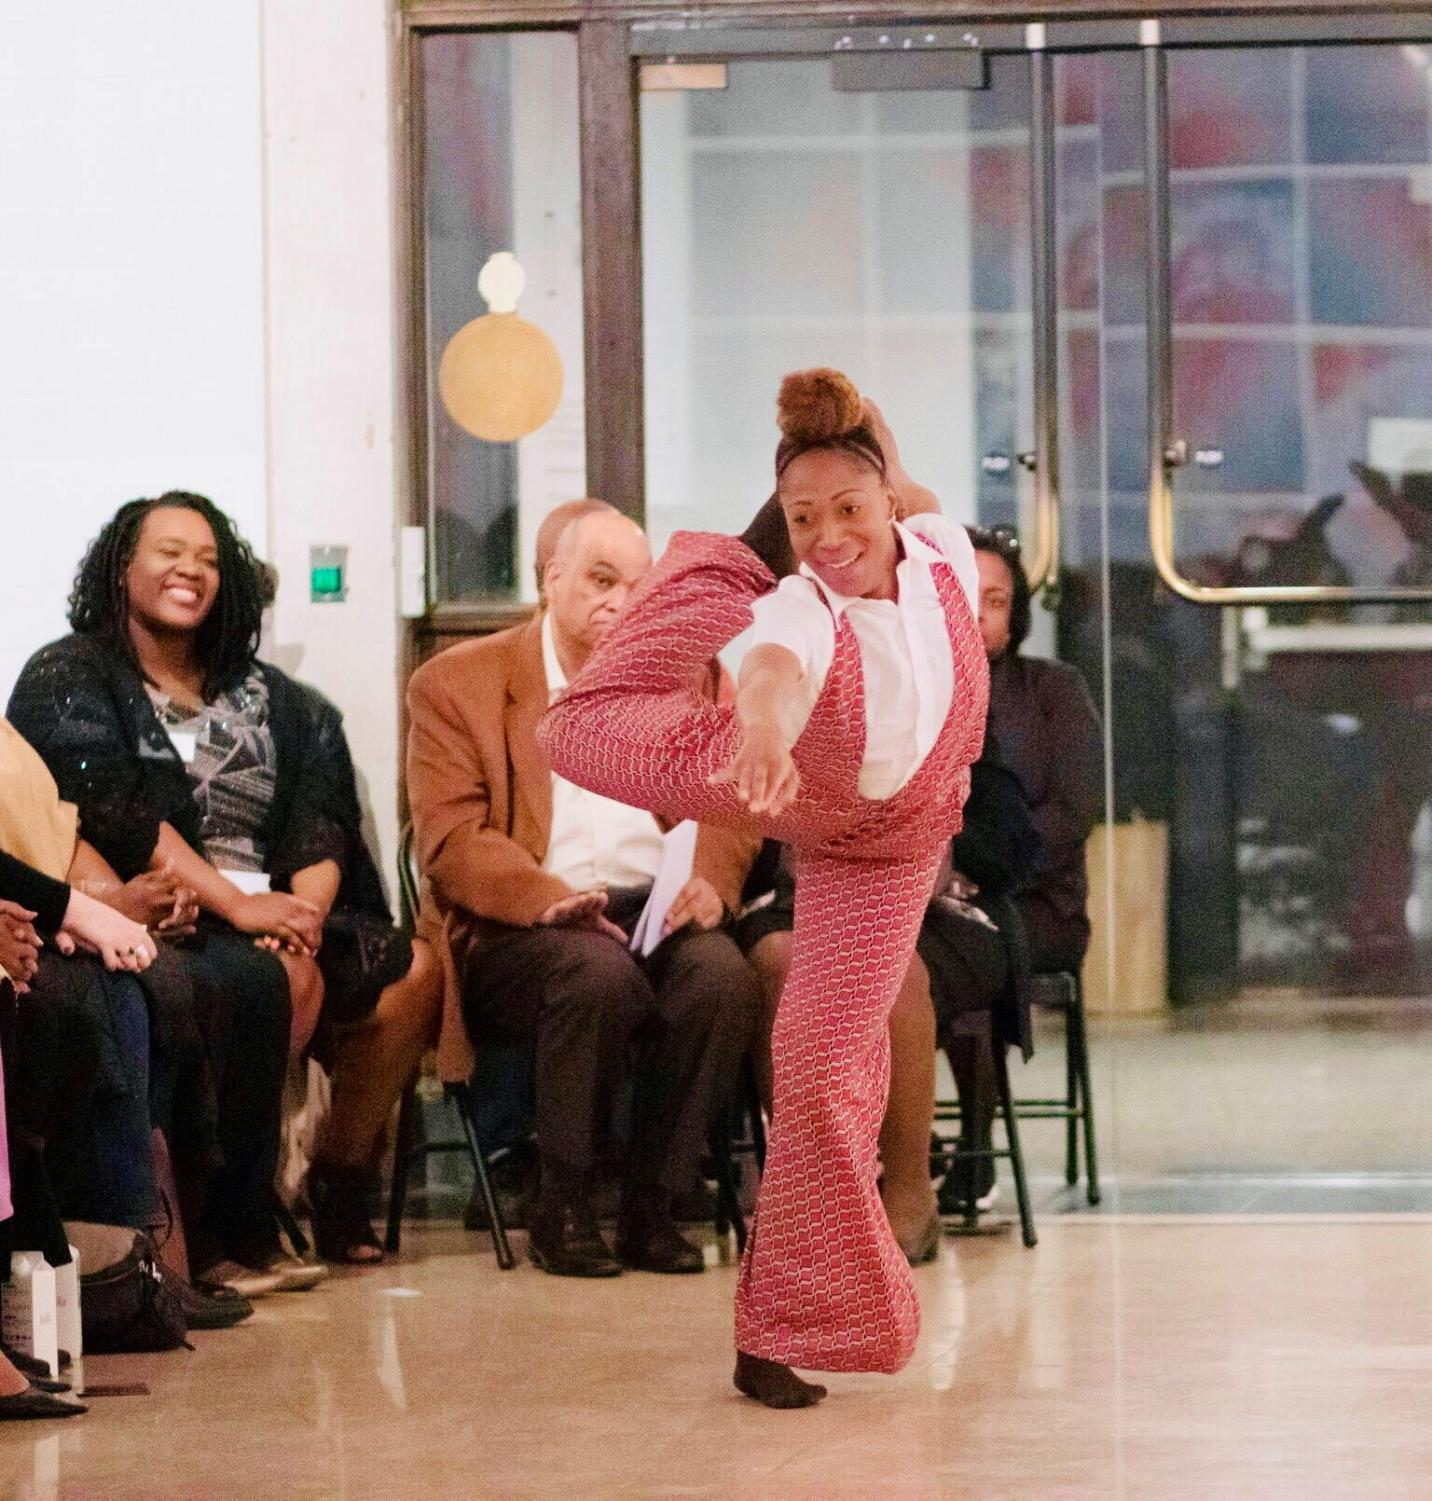 A performer entertains the audience in attendance with her contemporary dance routine.